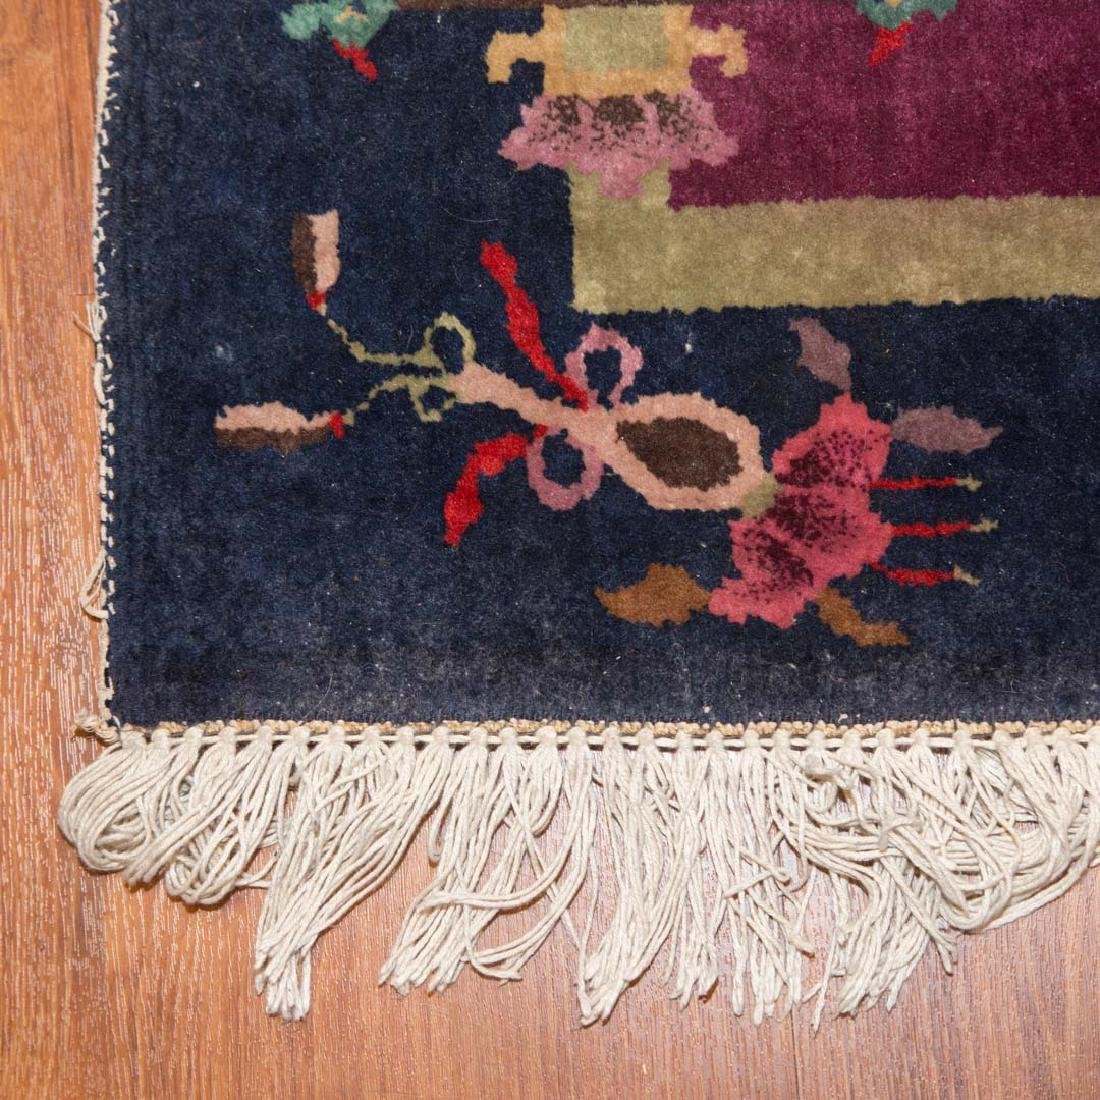 Two Chinese Nichols rugs, approx. 2.6 x 4 each - 3